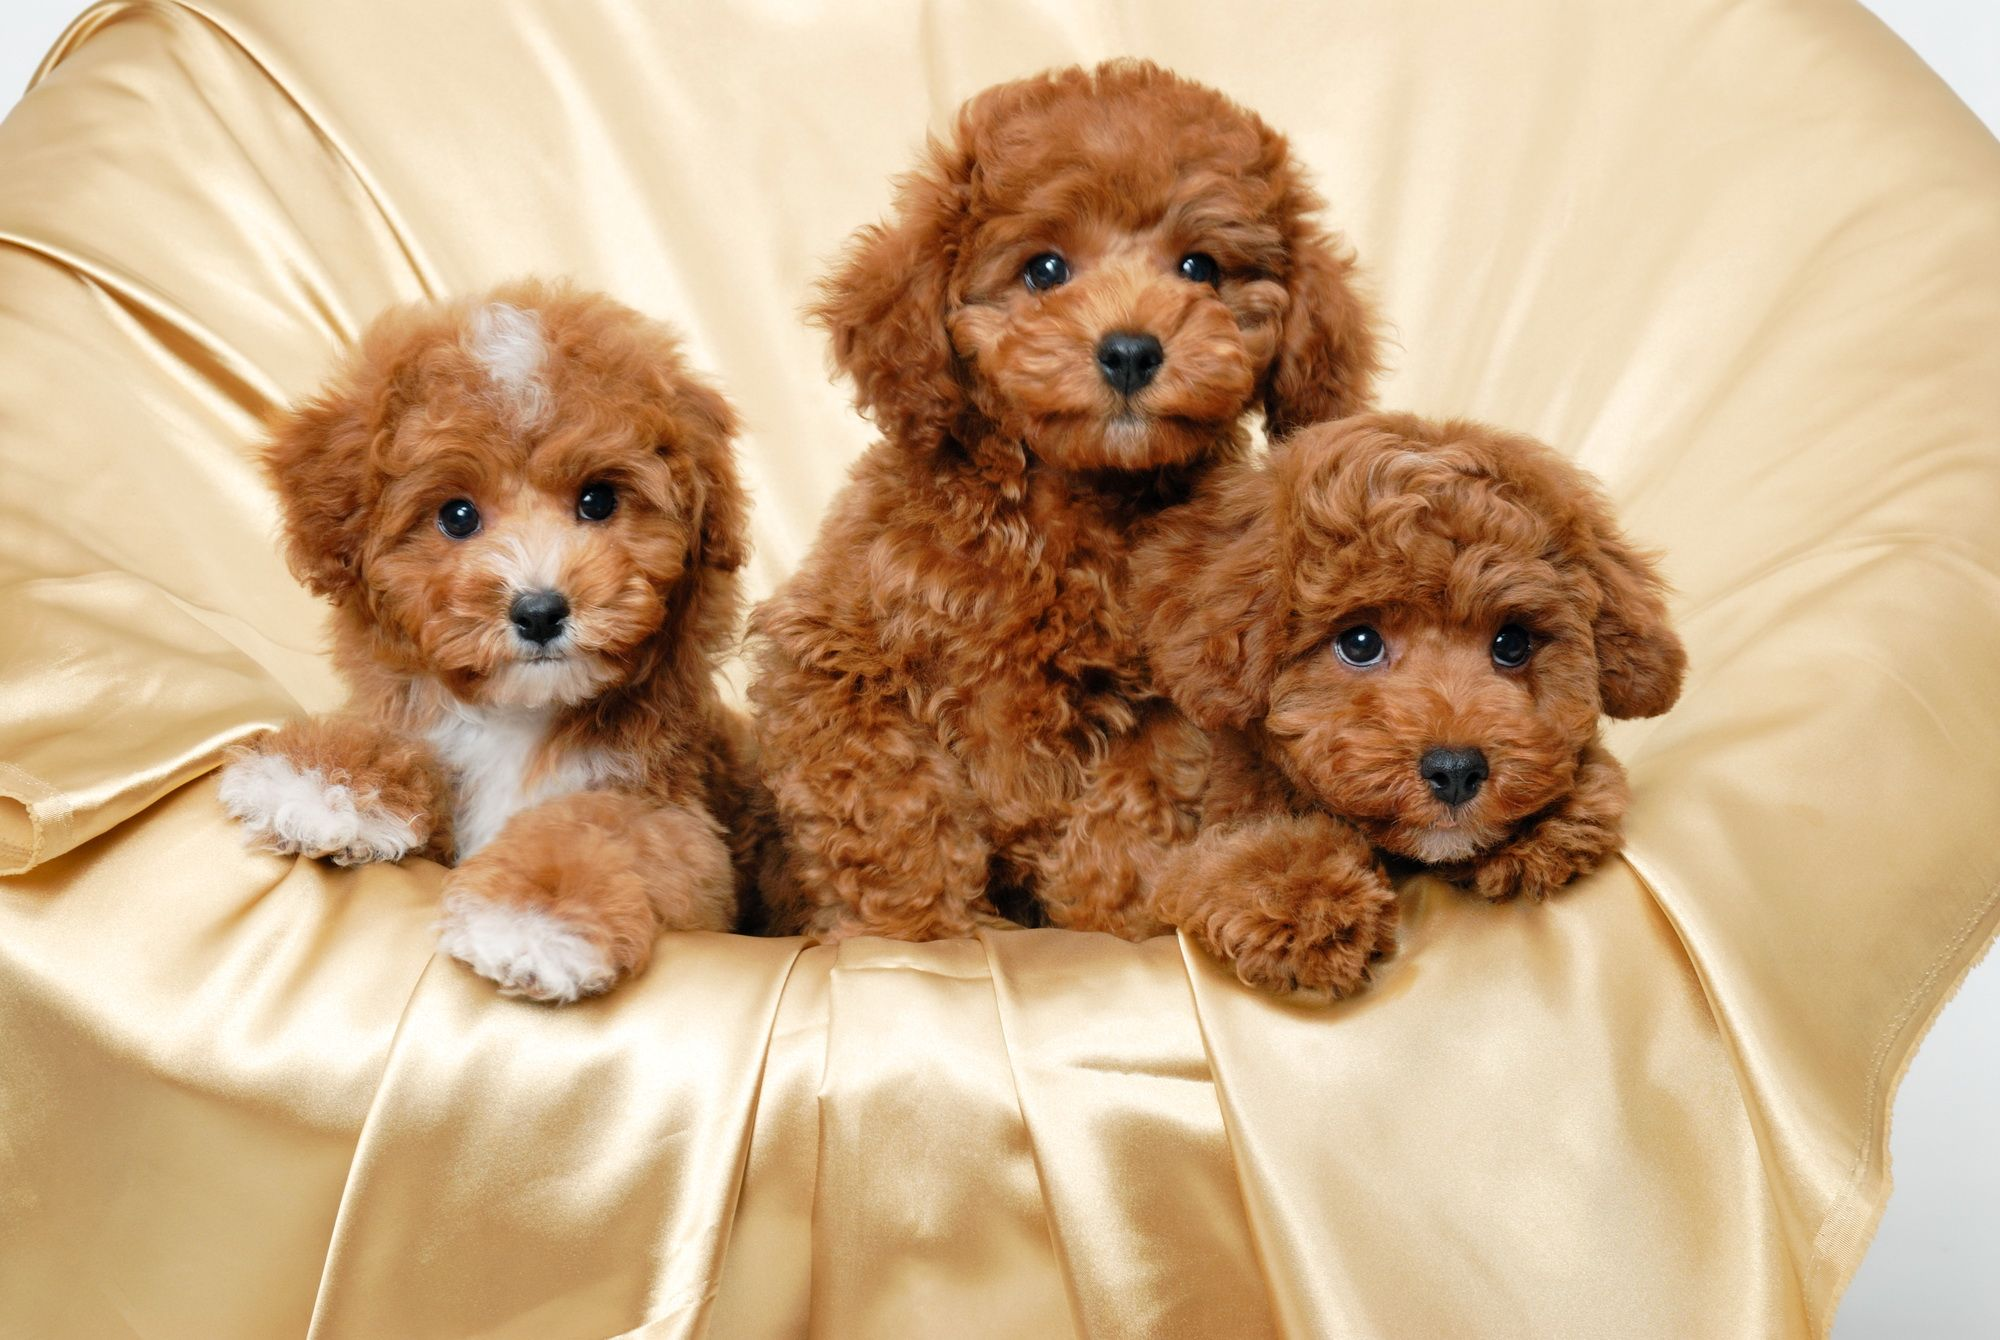 Hd Cute Puppies Wallpaper Download Free 104897 Cute Puppy